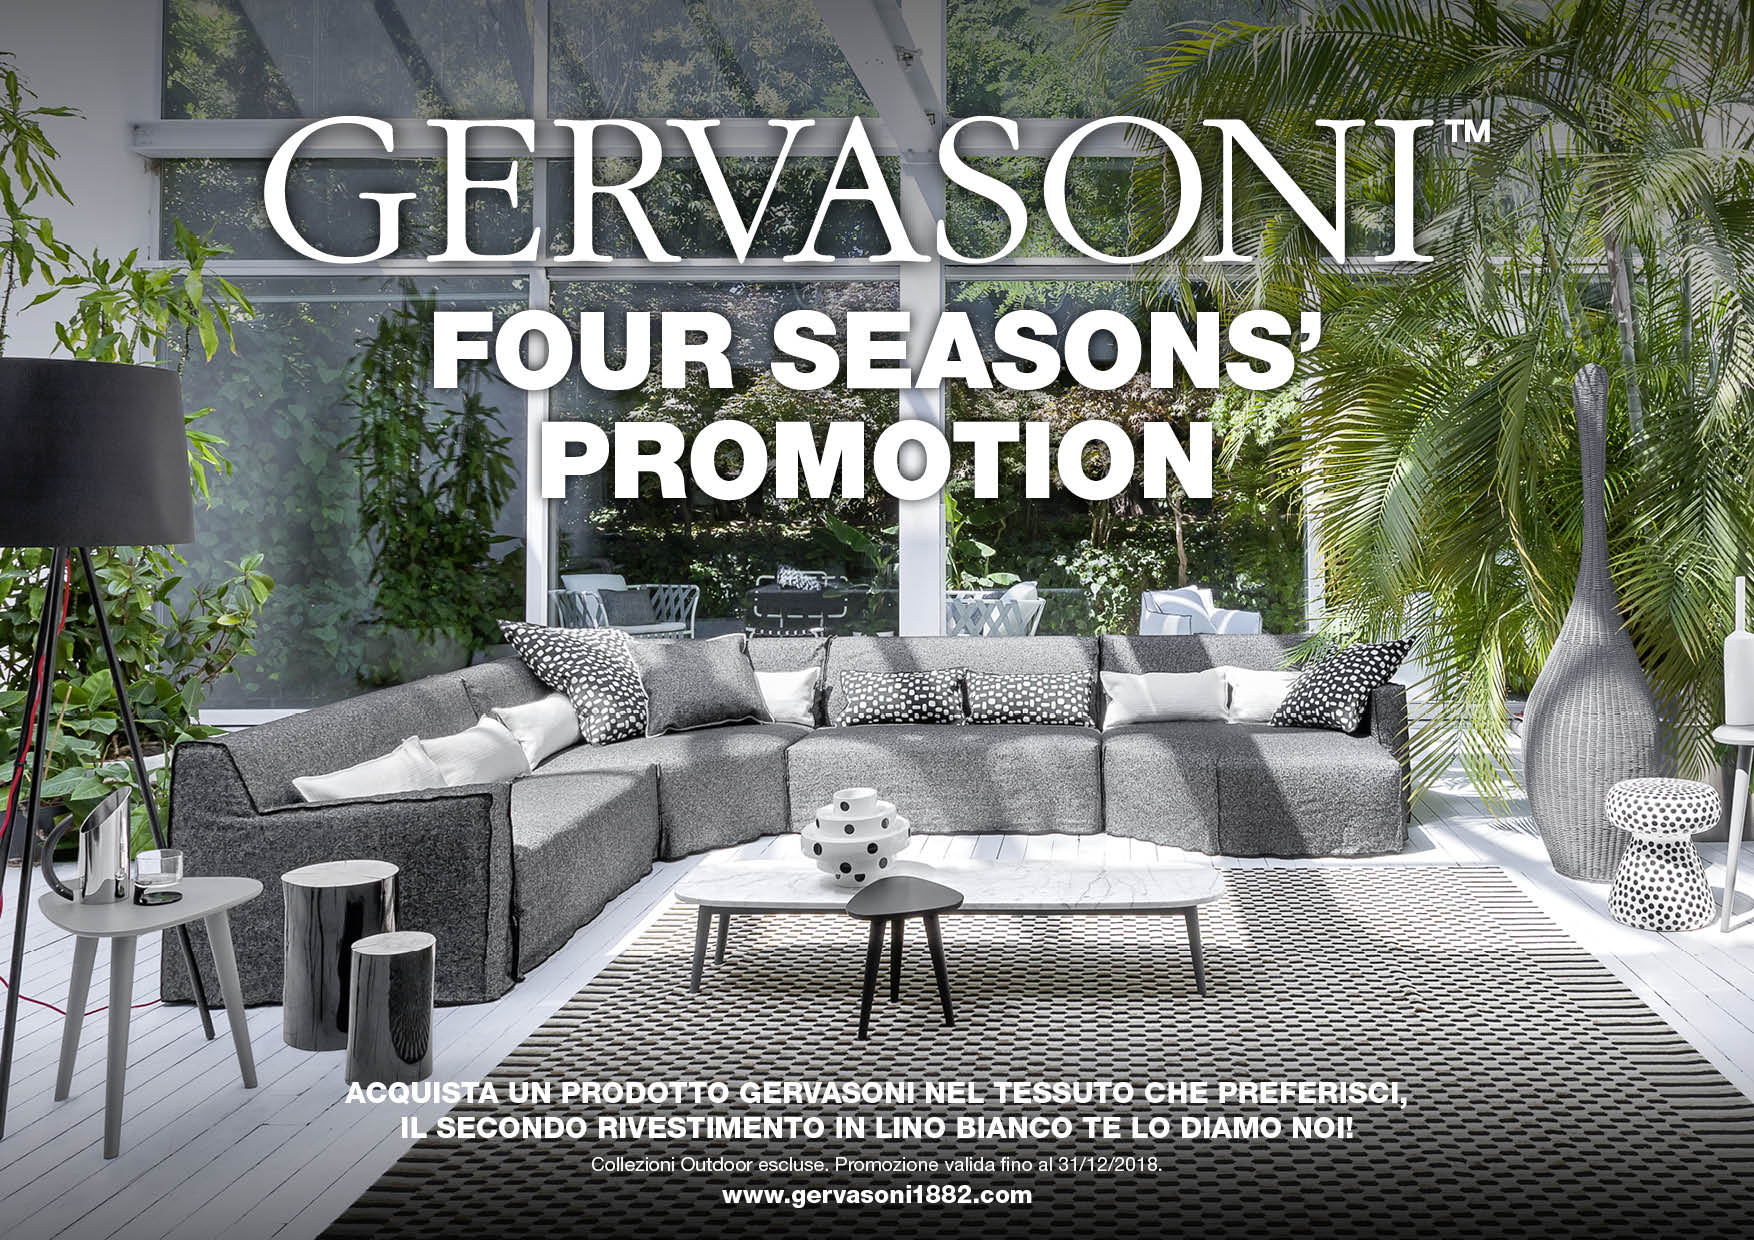 GERVASONI FOUR SEASON'S PROMOTION